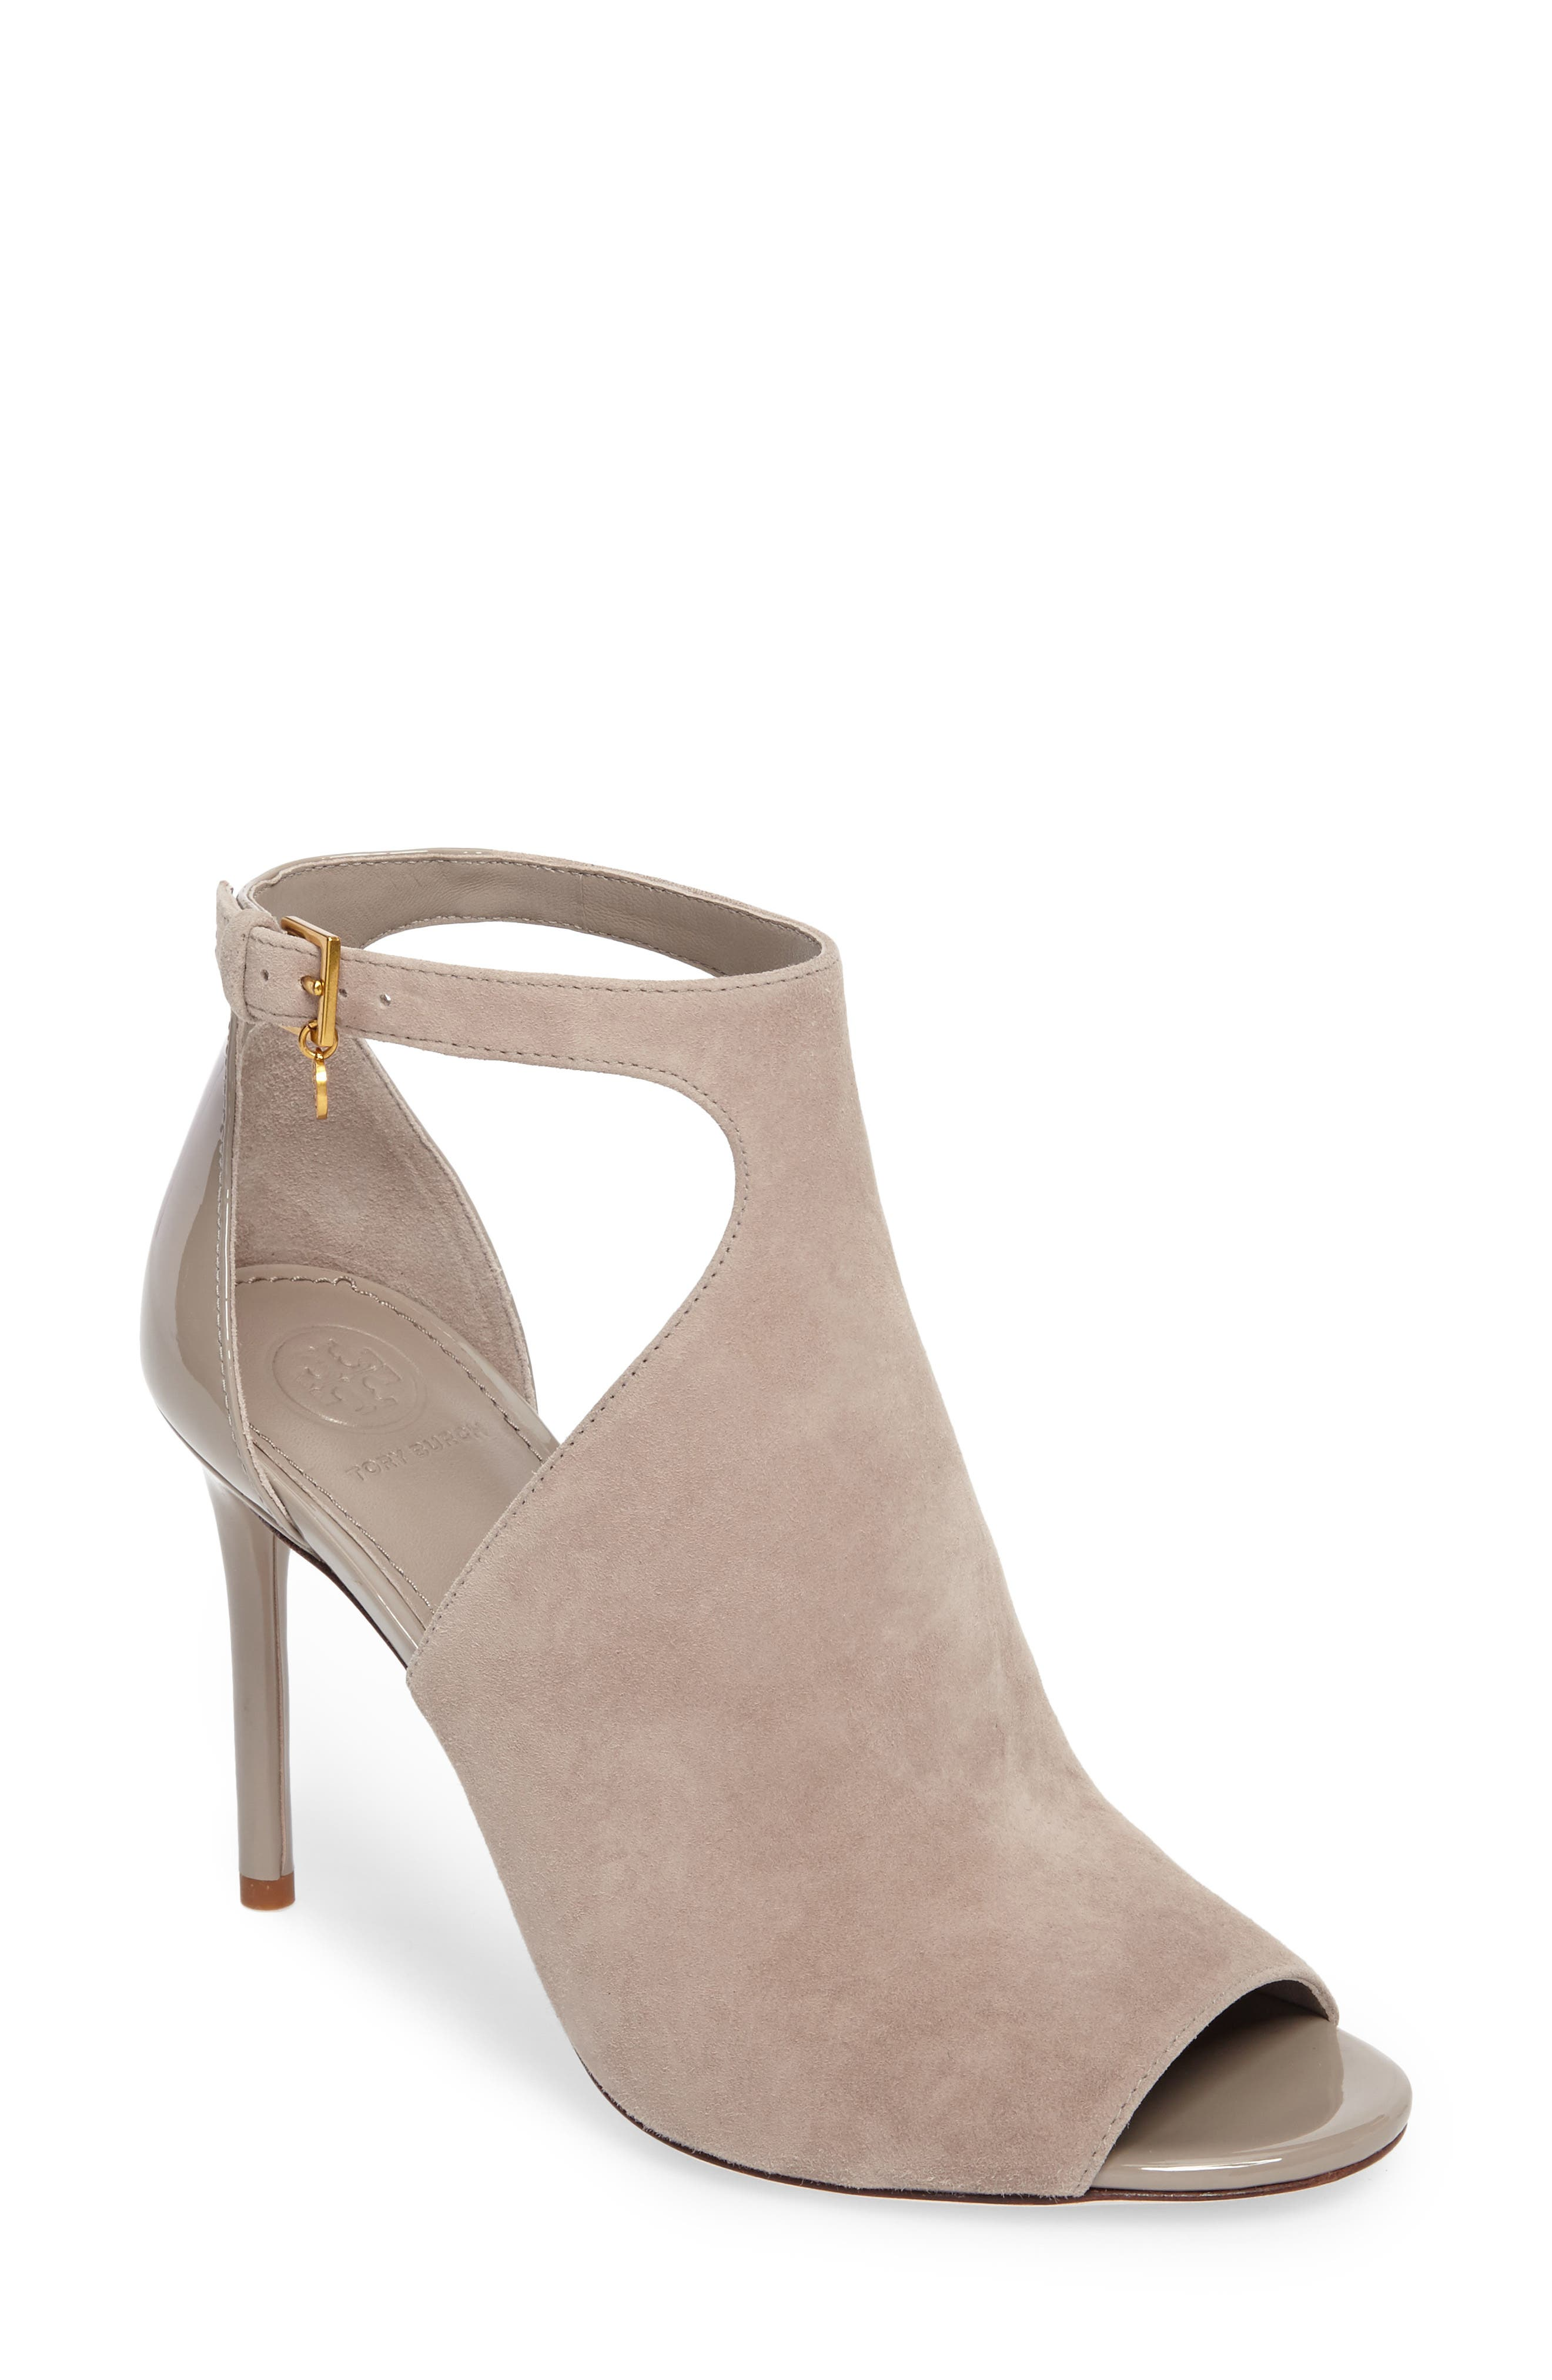 Alternate Image 1 Selected - Tory Burch Ashton Open Toe Bootie (Women)